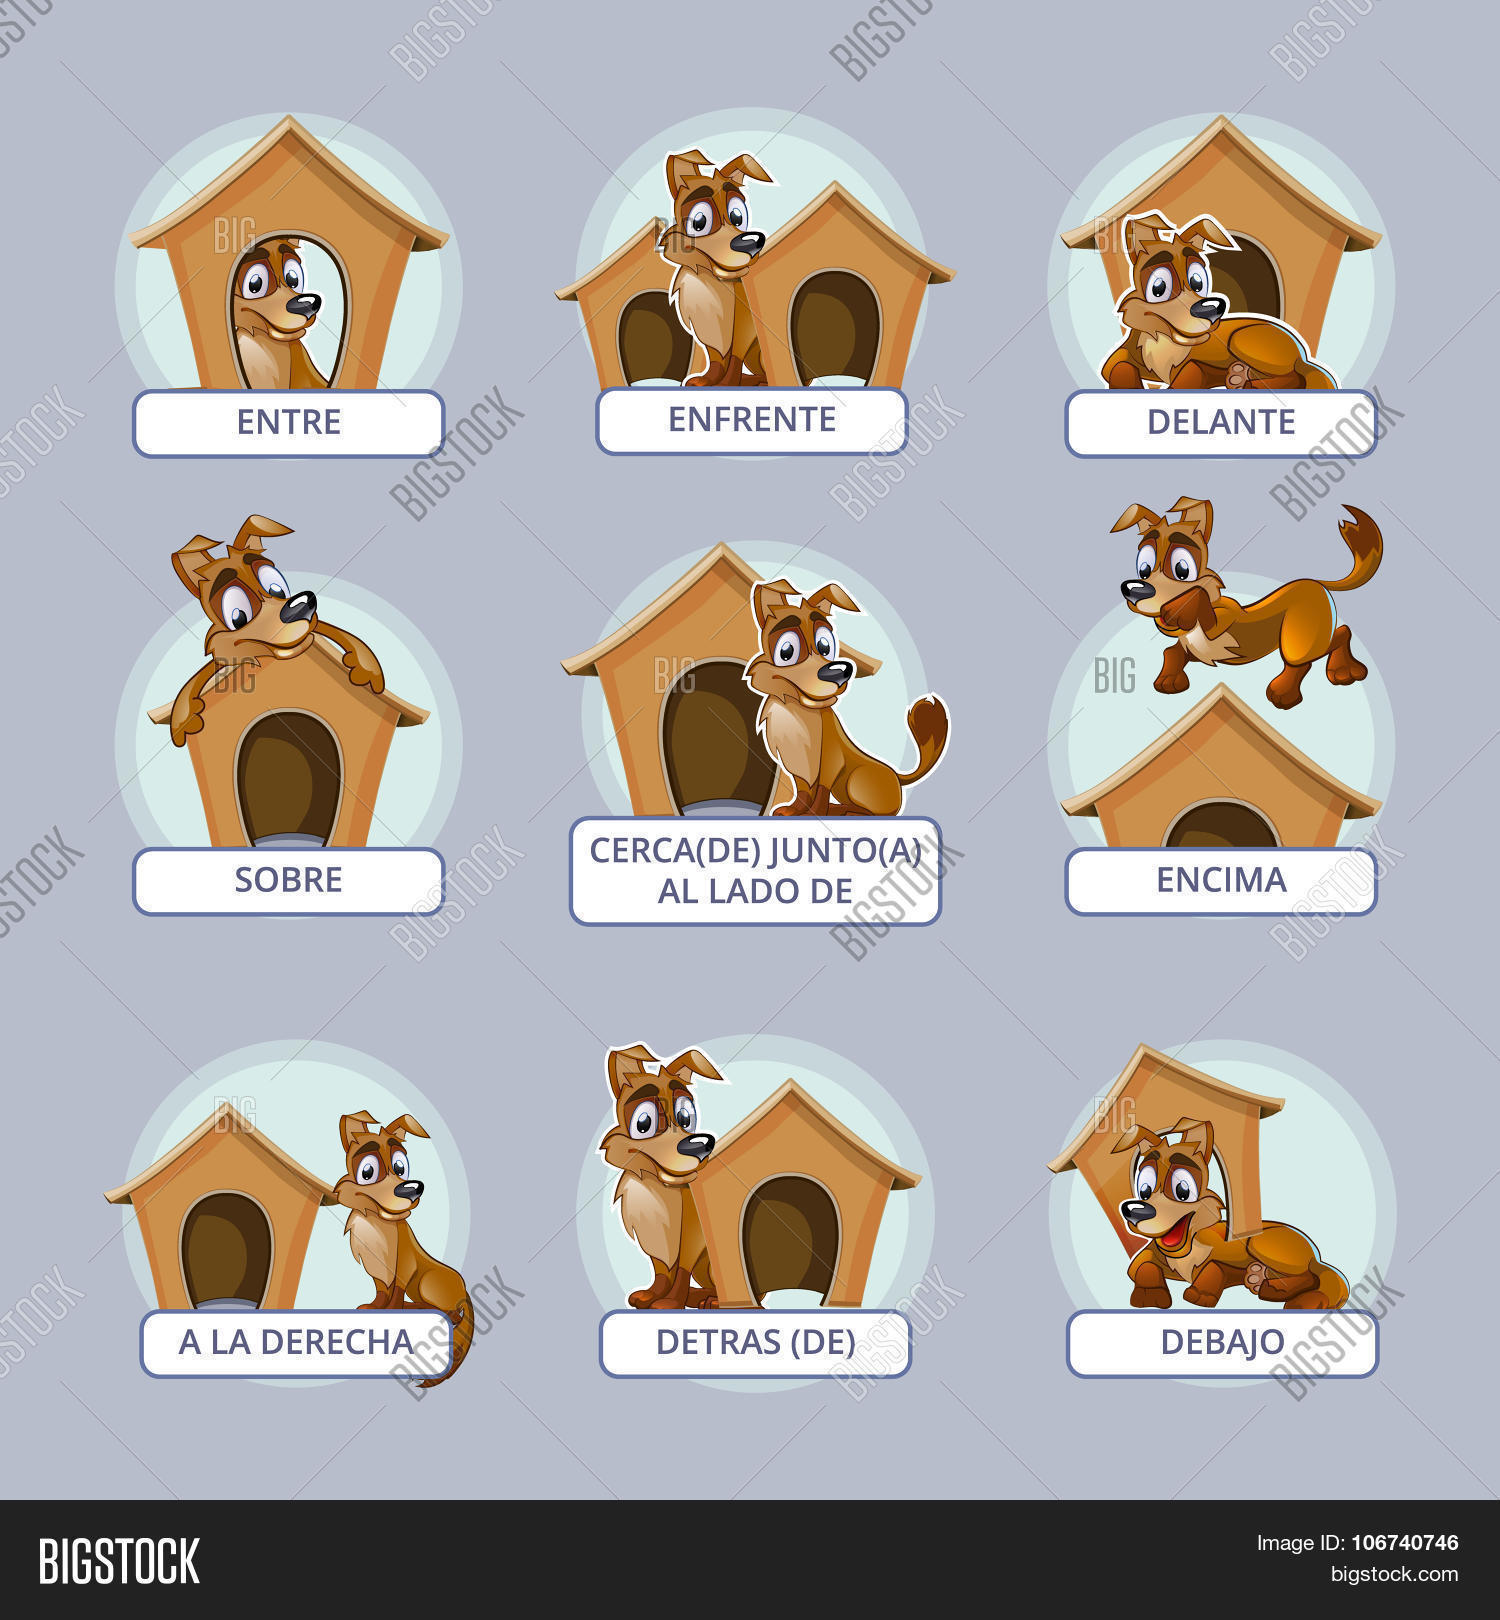 Cartoon Dog In Different Poses To Illustrate Spanish